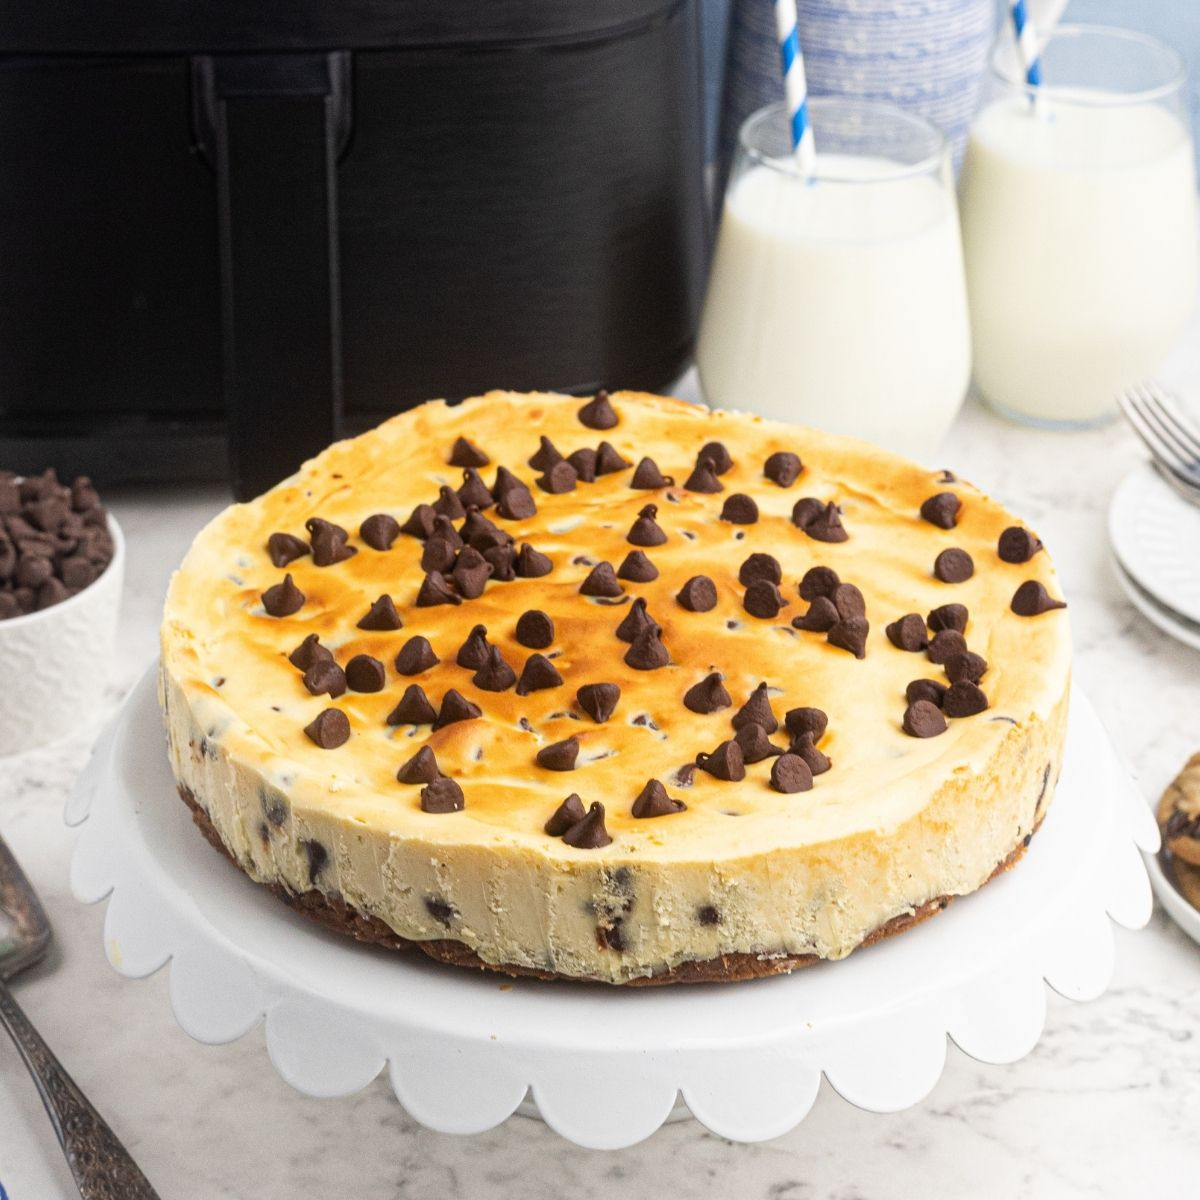 Air Fryer Chocolate Chip cheesecake on a white cake stand, in front of an air fryer.